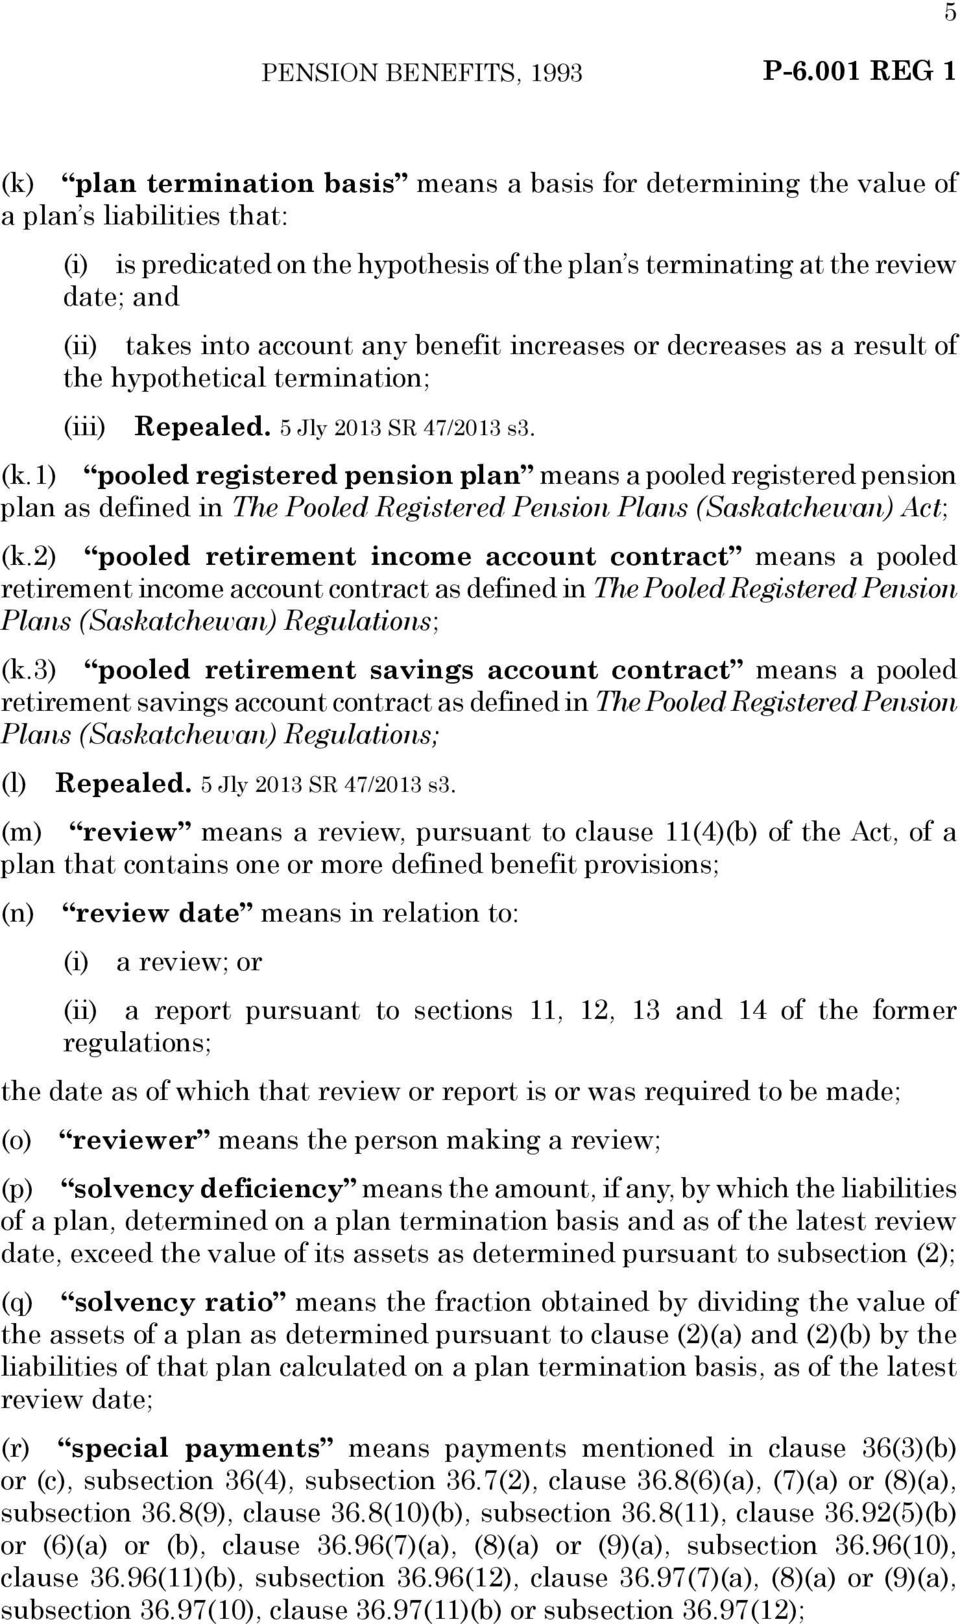 1) pooled registered pension plan means a pooled registered pension plan as defined in The Pooled Registered Pension Plans (Saskatchewan) Act; (k.